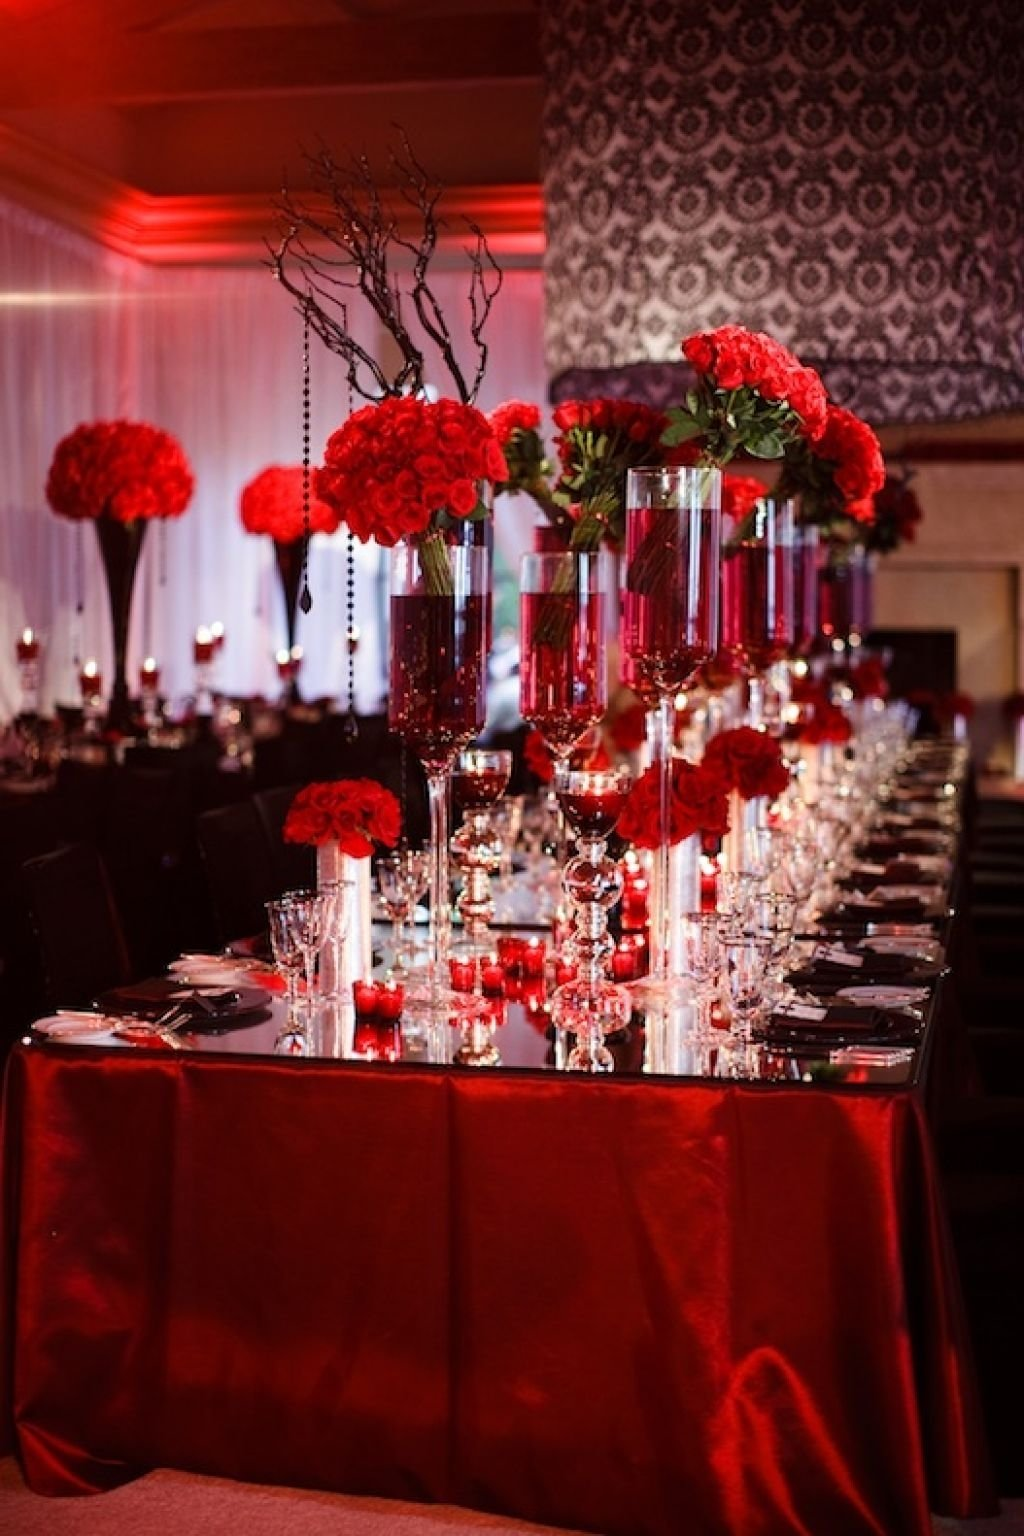 10 Perfect Red White And Black Wedding Ideas red and black wedding decor wedding ideas uxjj 2020